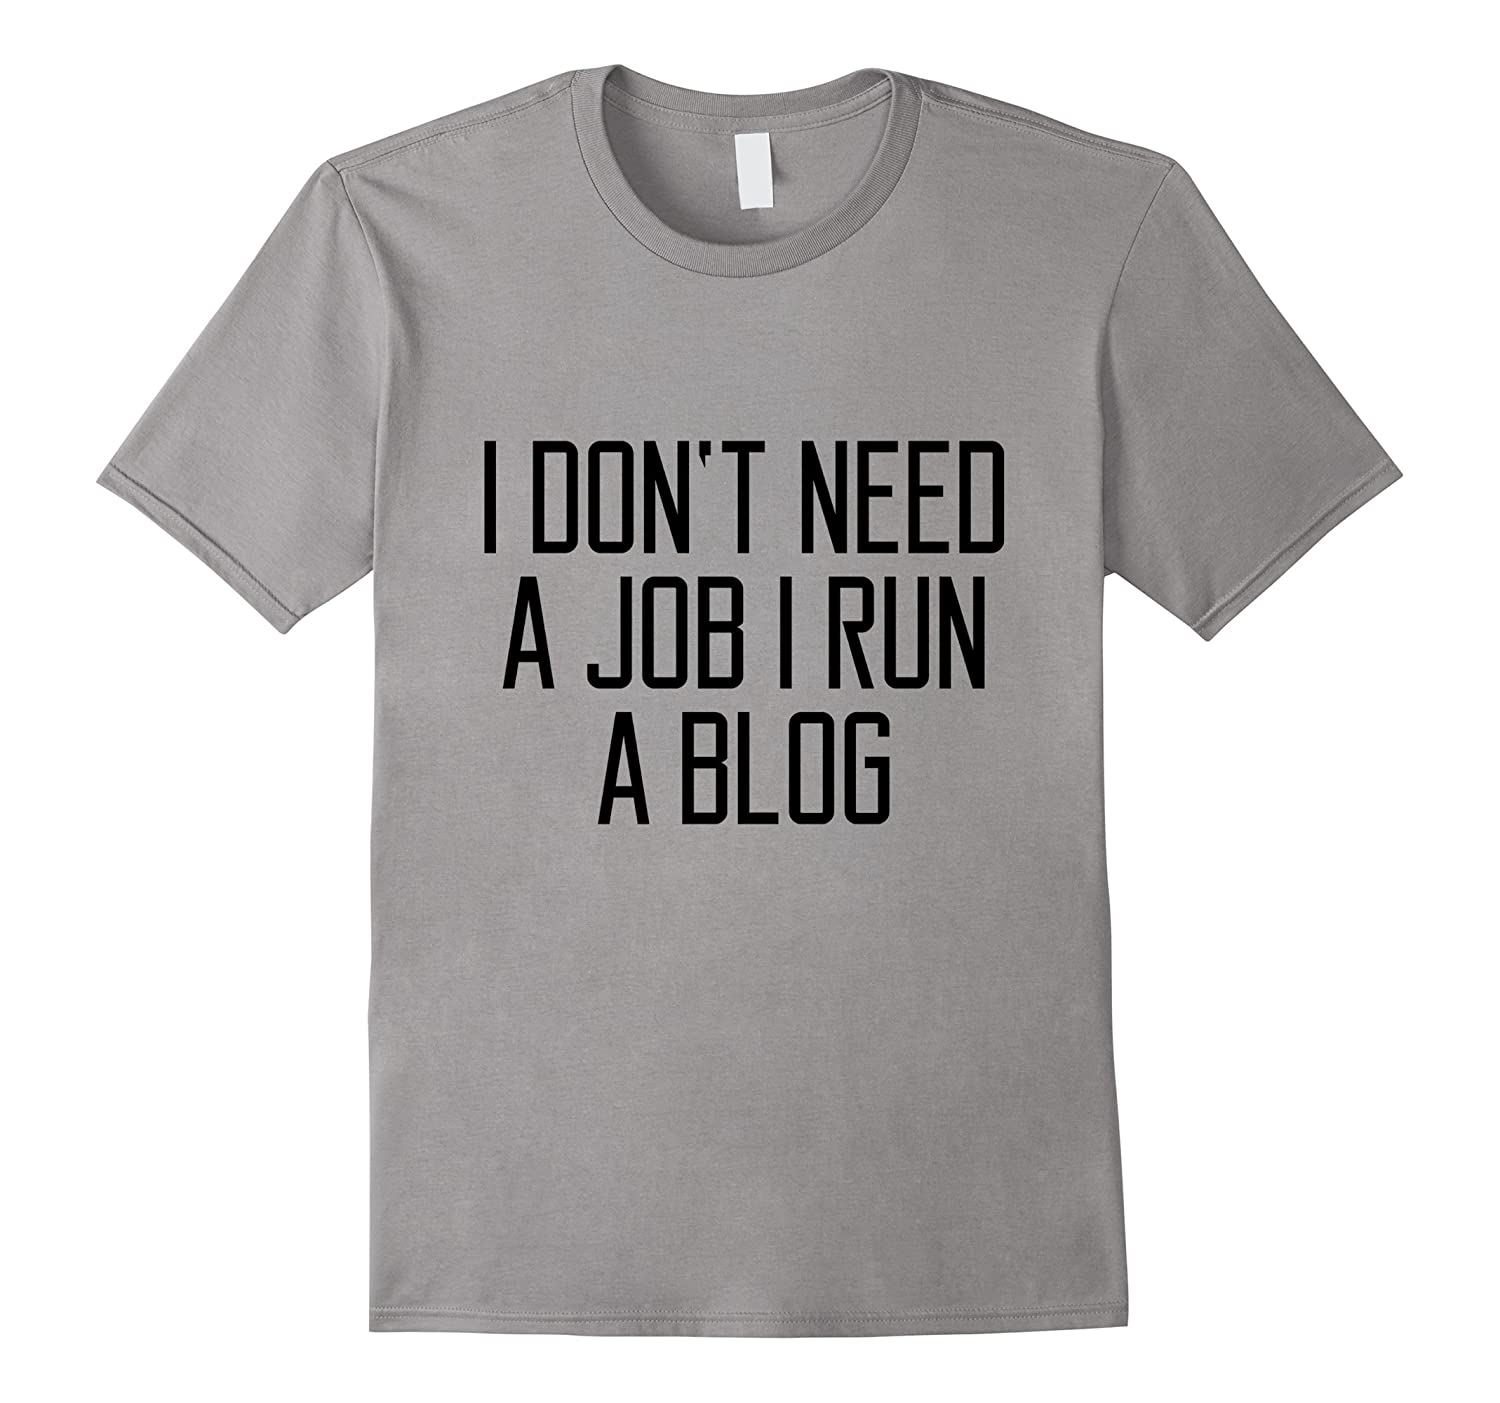 I Dont Need A Job I Run A Blog T-Shirt Funny Saying Slogan-TJ